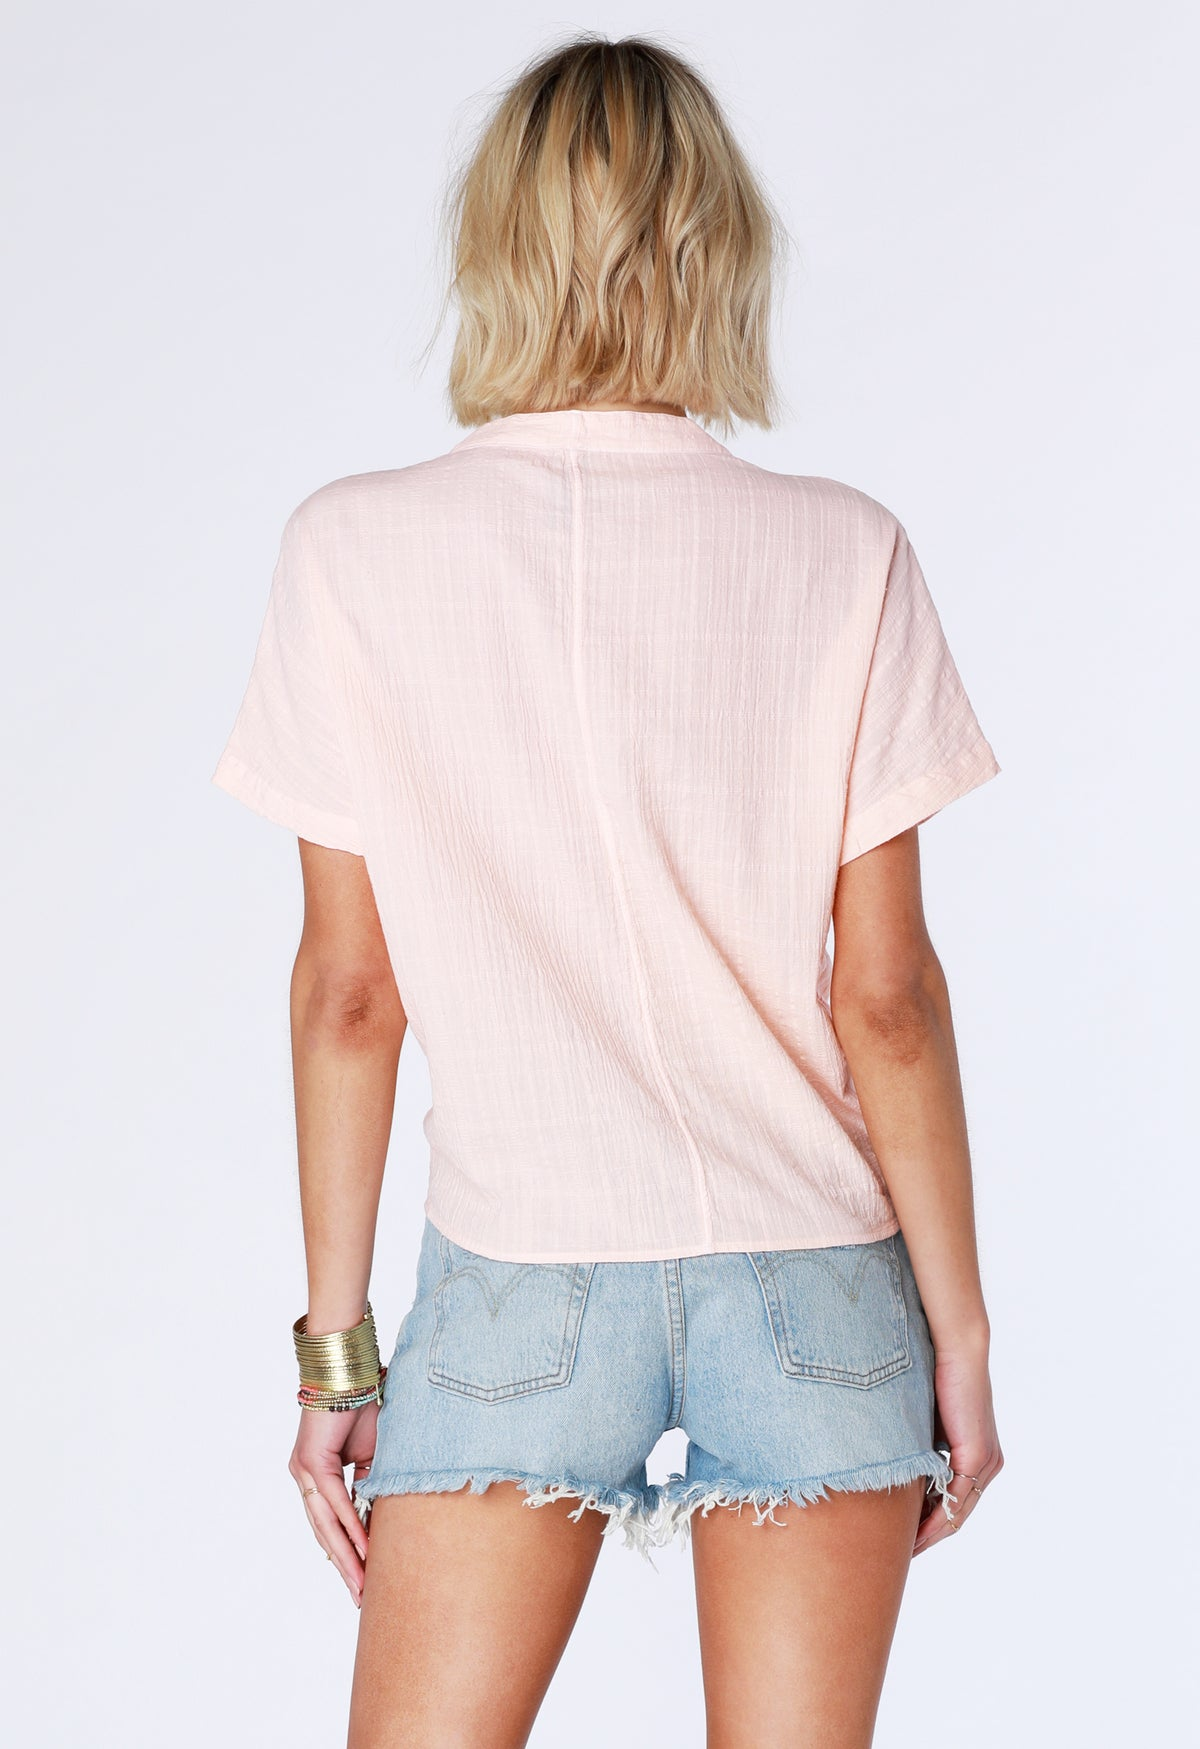 Woven Tie Hem Top - bobi Los Angeles